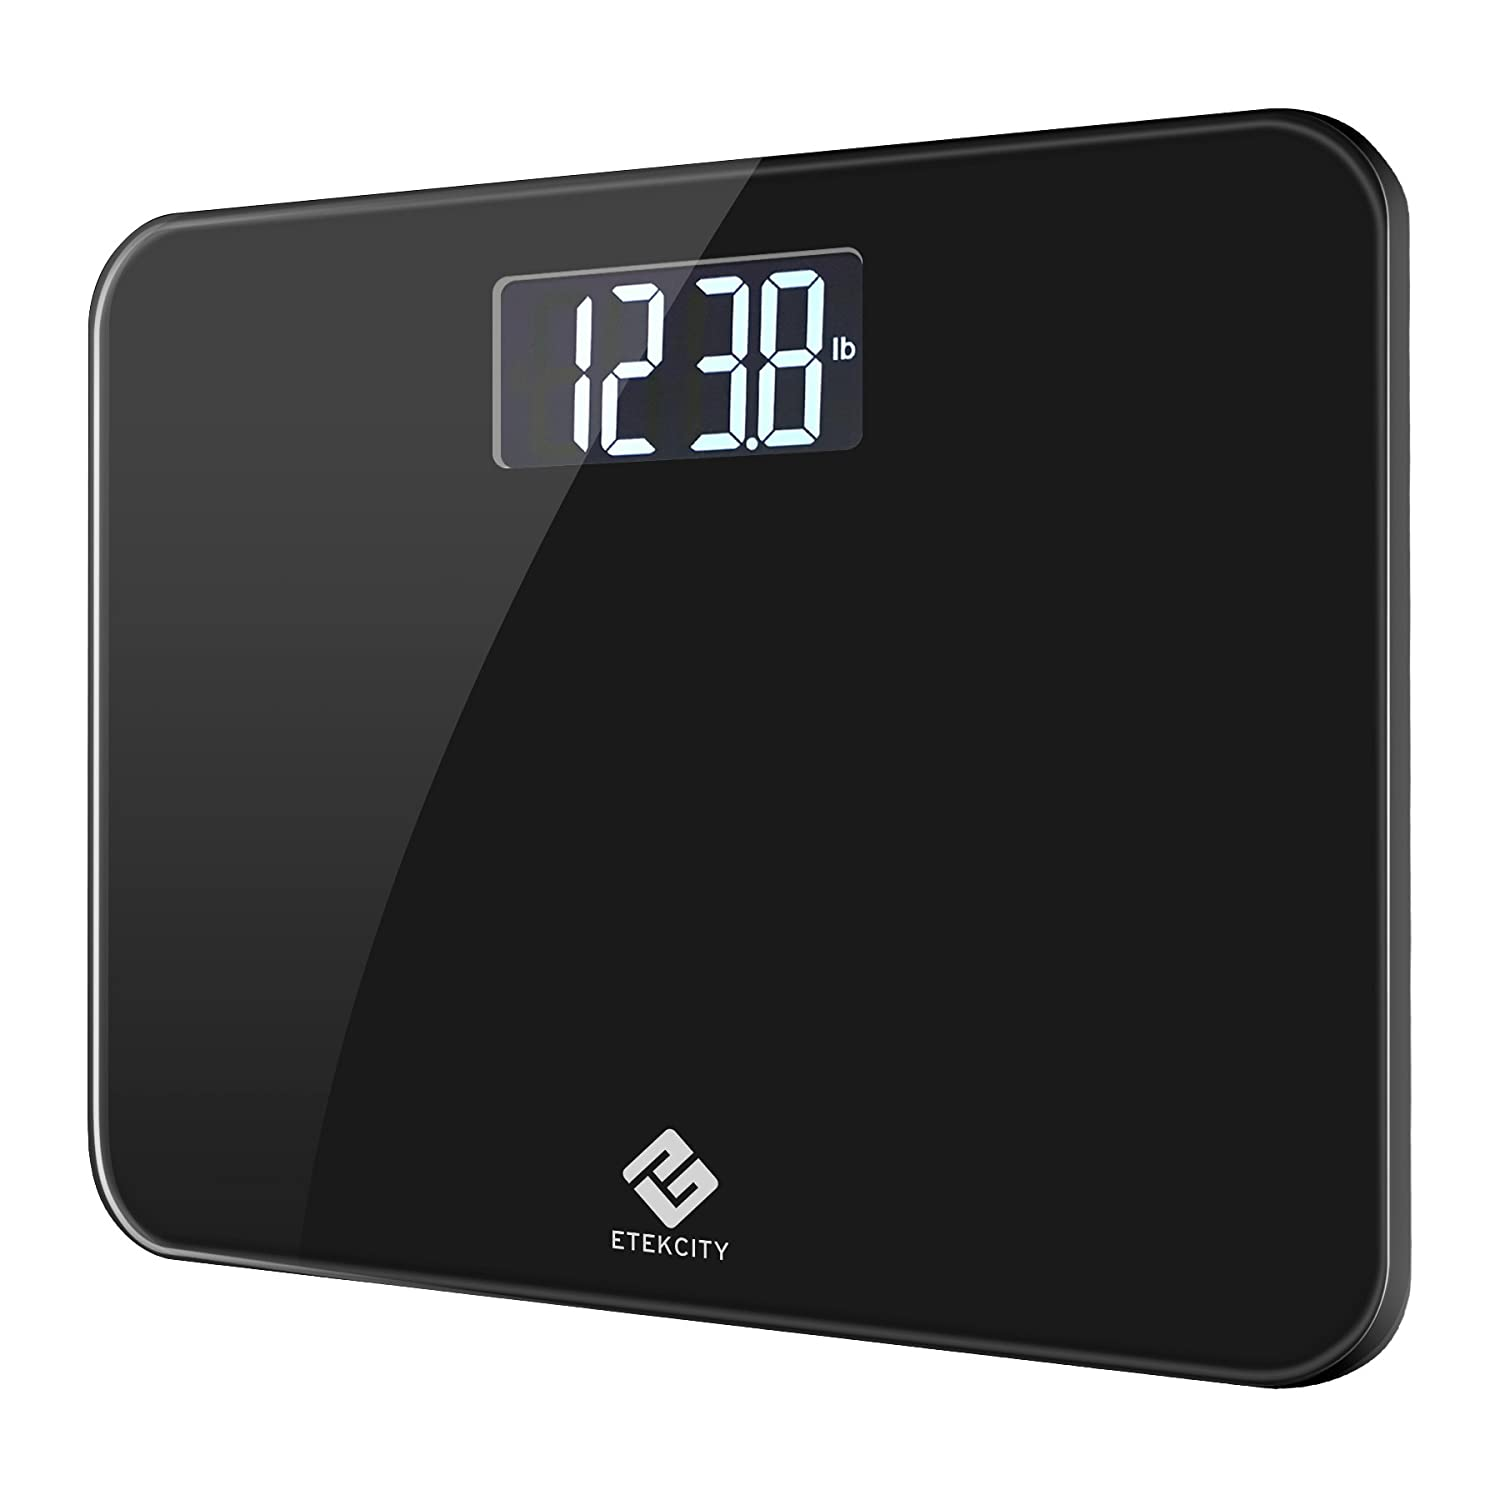 Calibrate digital bathroom scale - Amazon Com Etekcity Digital Body Weight Bathroom Scale With Extra Large Display 440 Pounds Body Tape Measure Included Elegant Black Health Personal